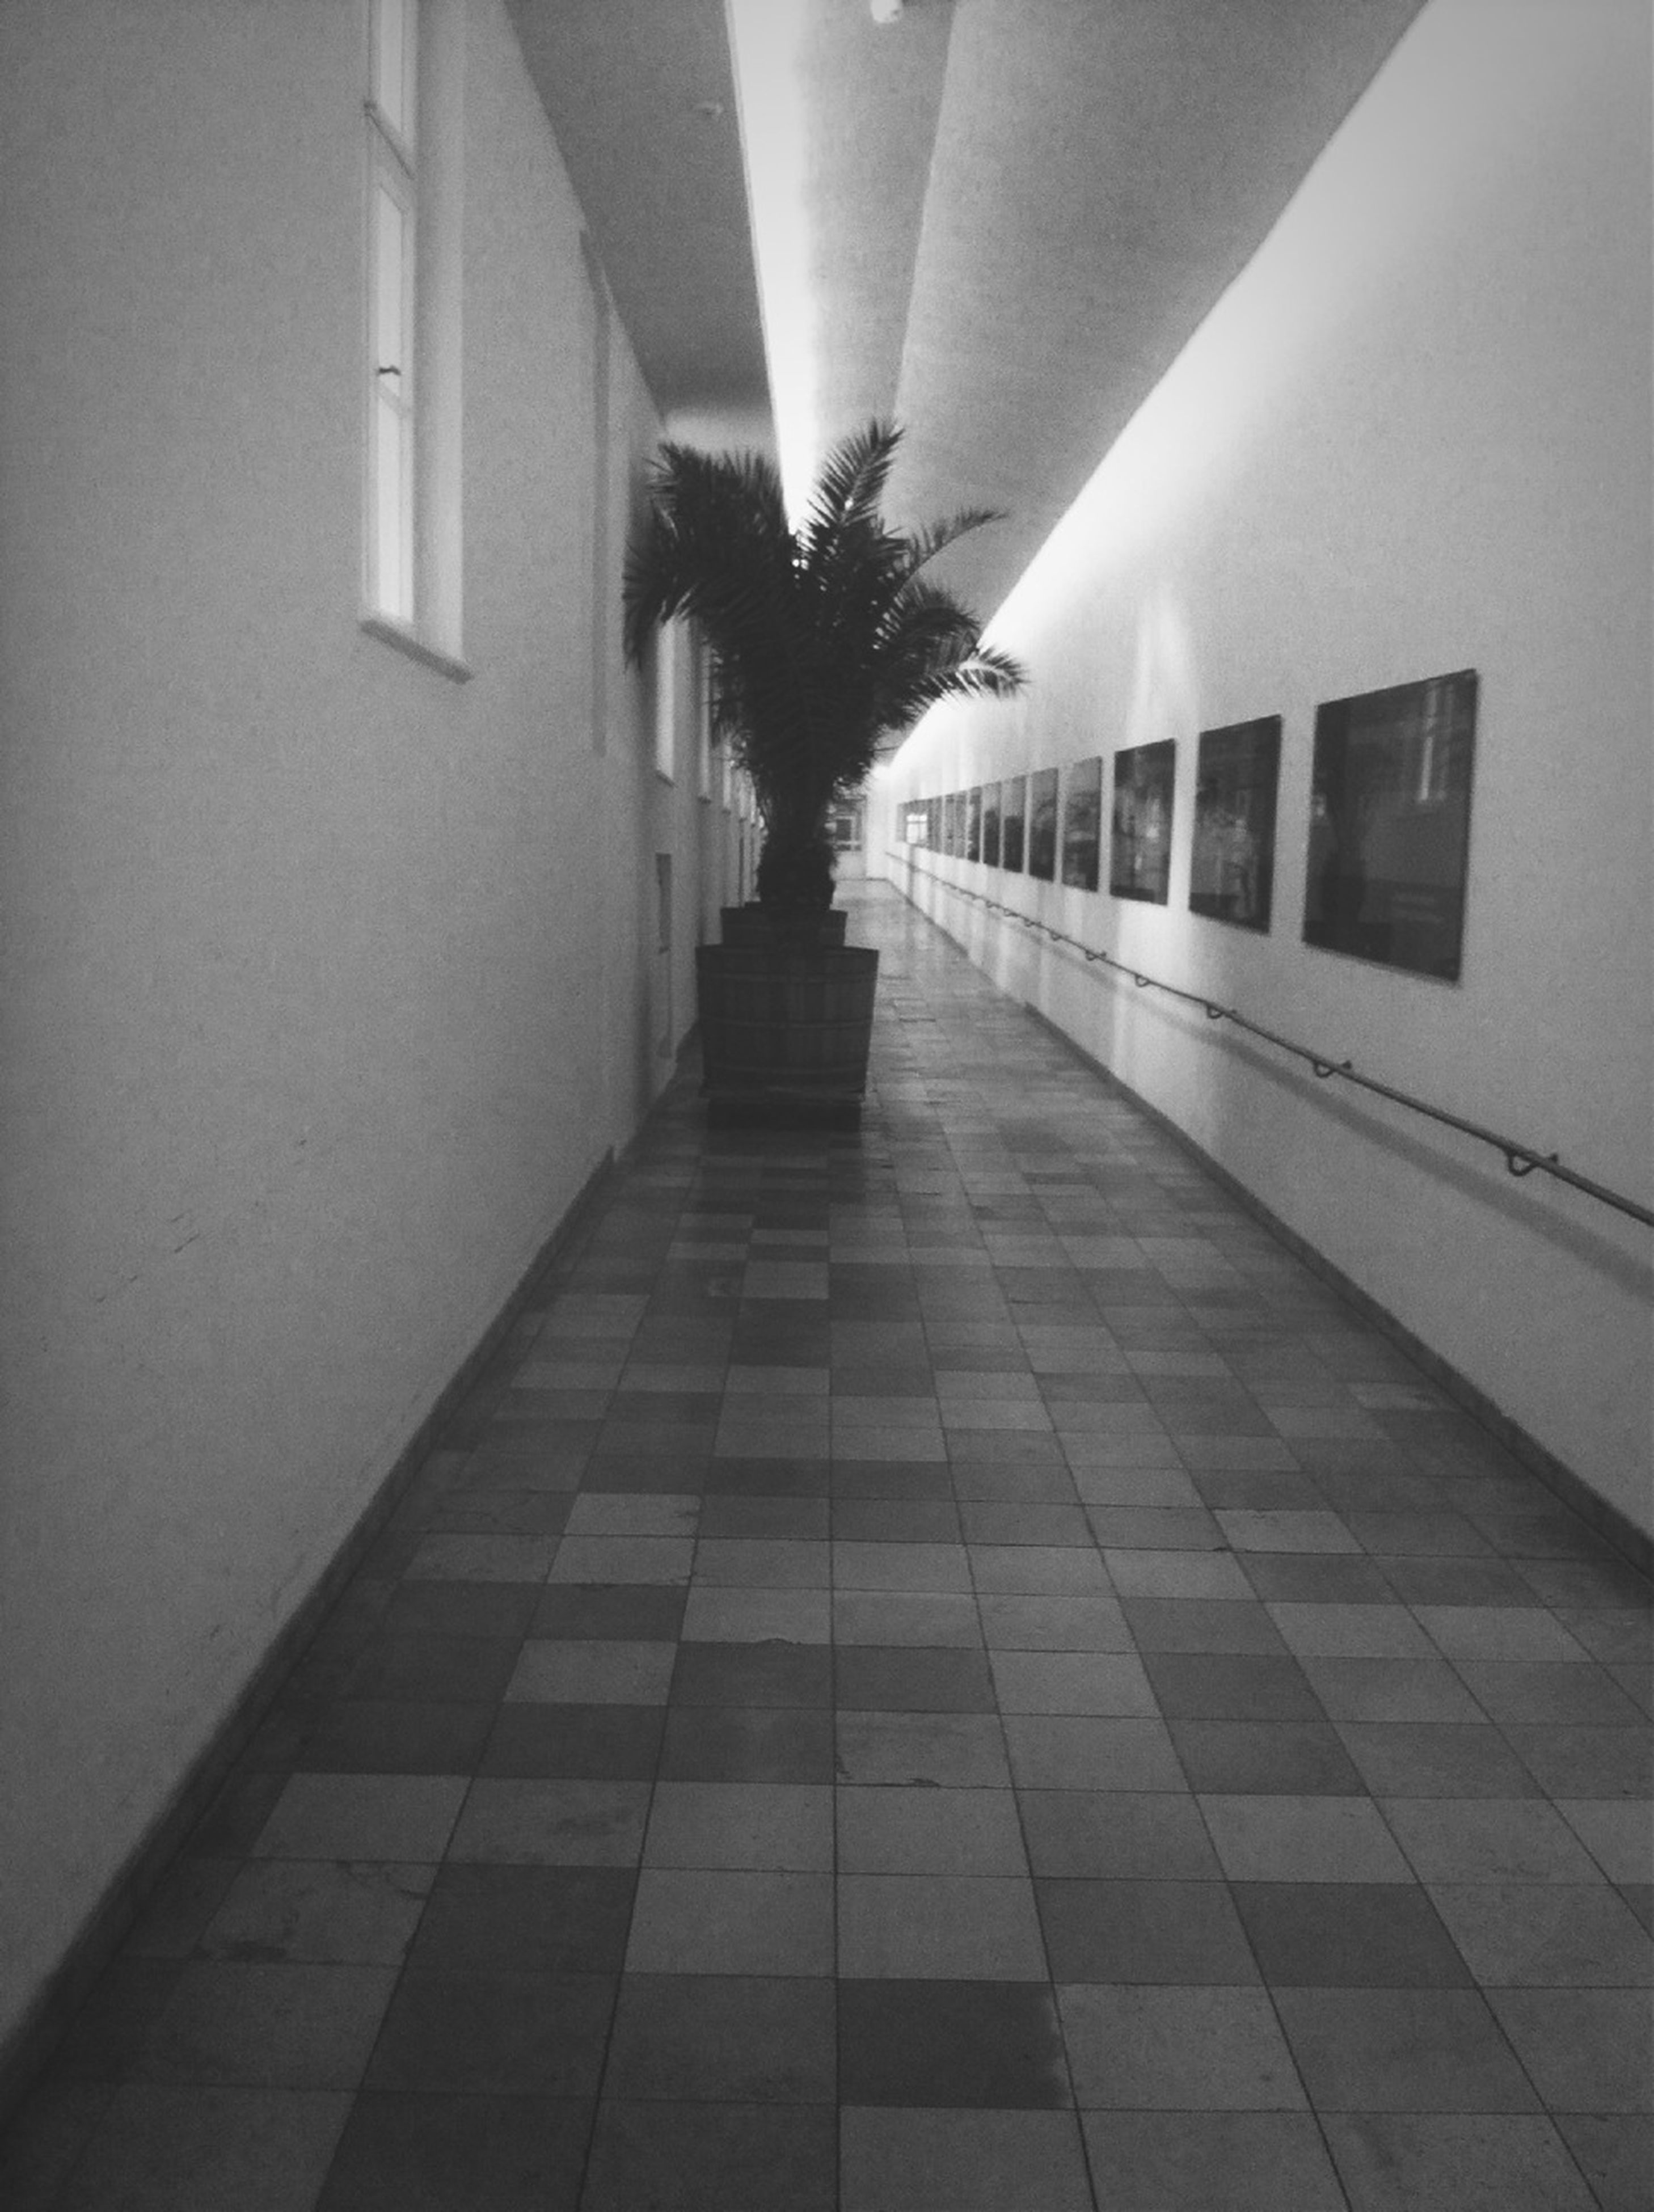 architecture, built structure, illuminated, the way forward, tiled floor, indoors, corridor, flooring, lighting equipment, building, diminishing perspective, ceiling, building exterior, wall - building feature, empty, walkway, tile, no people, sunlight, absence